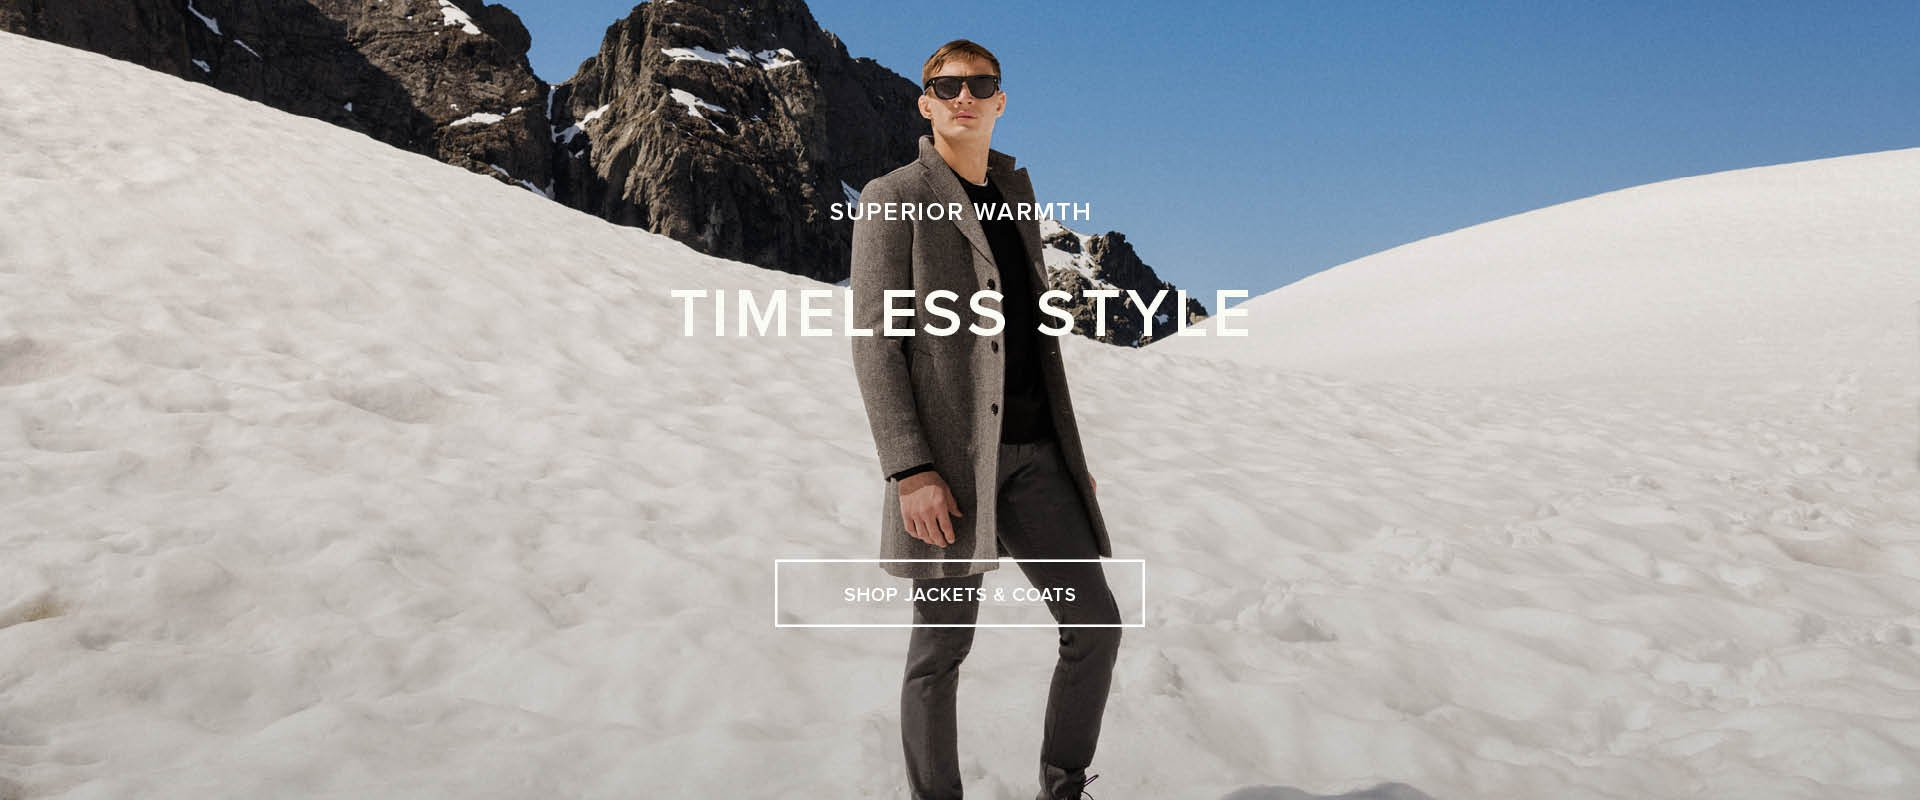 Superior Warmth, Timeless Style - Shop Jackets/Coats